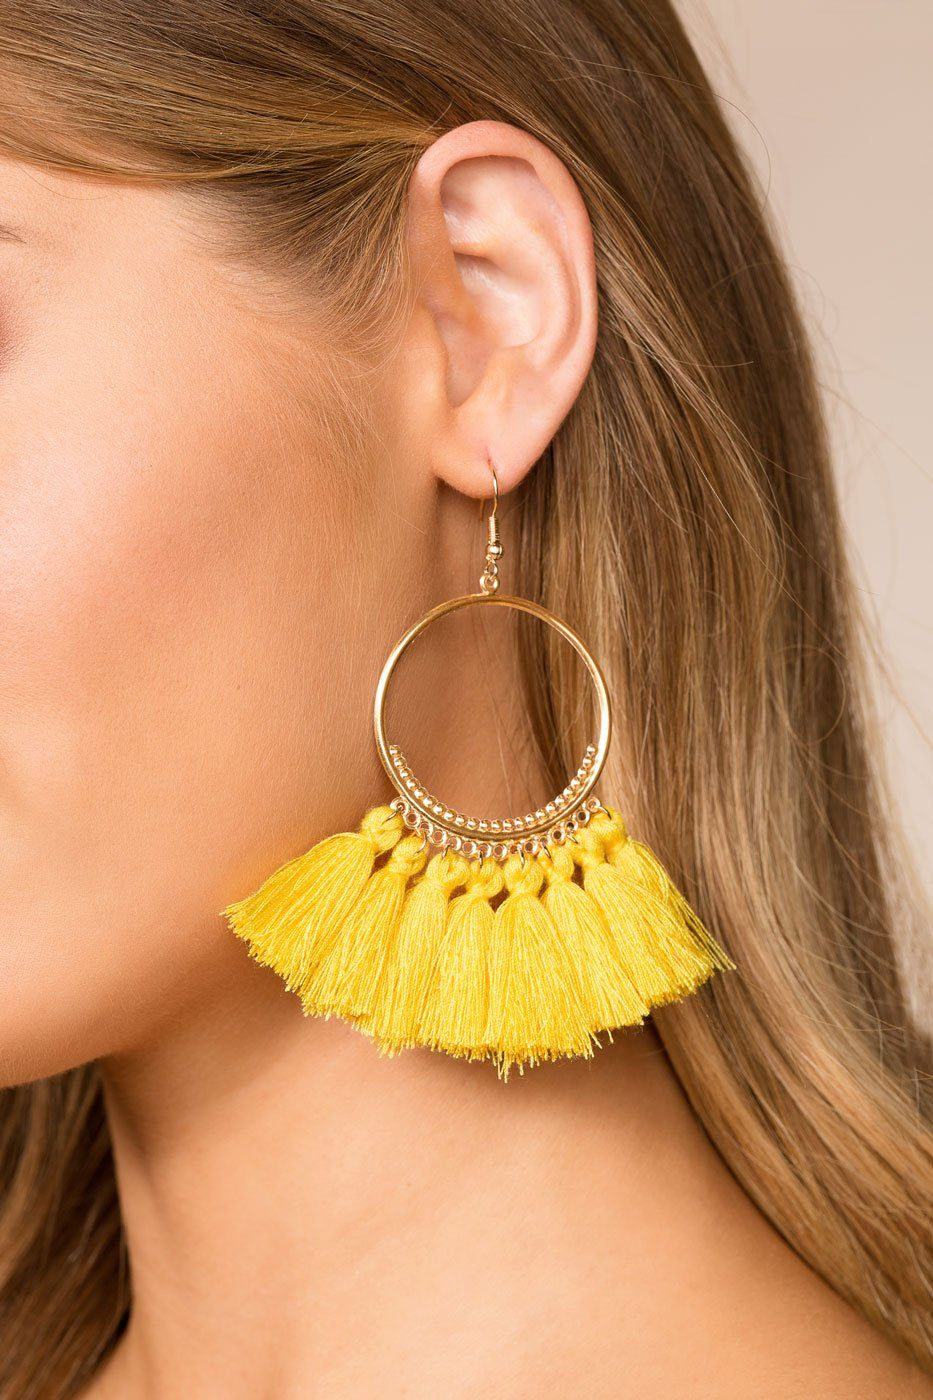 e19a6df74560af ... Yellow Tassel Earrings | Shop Priceless. 1; 2